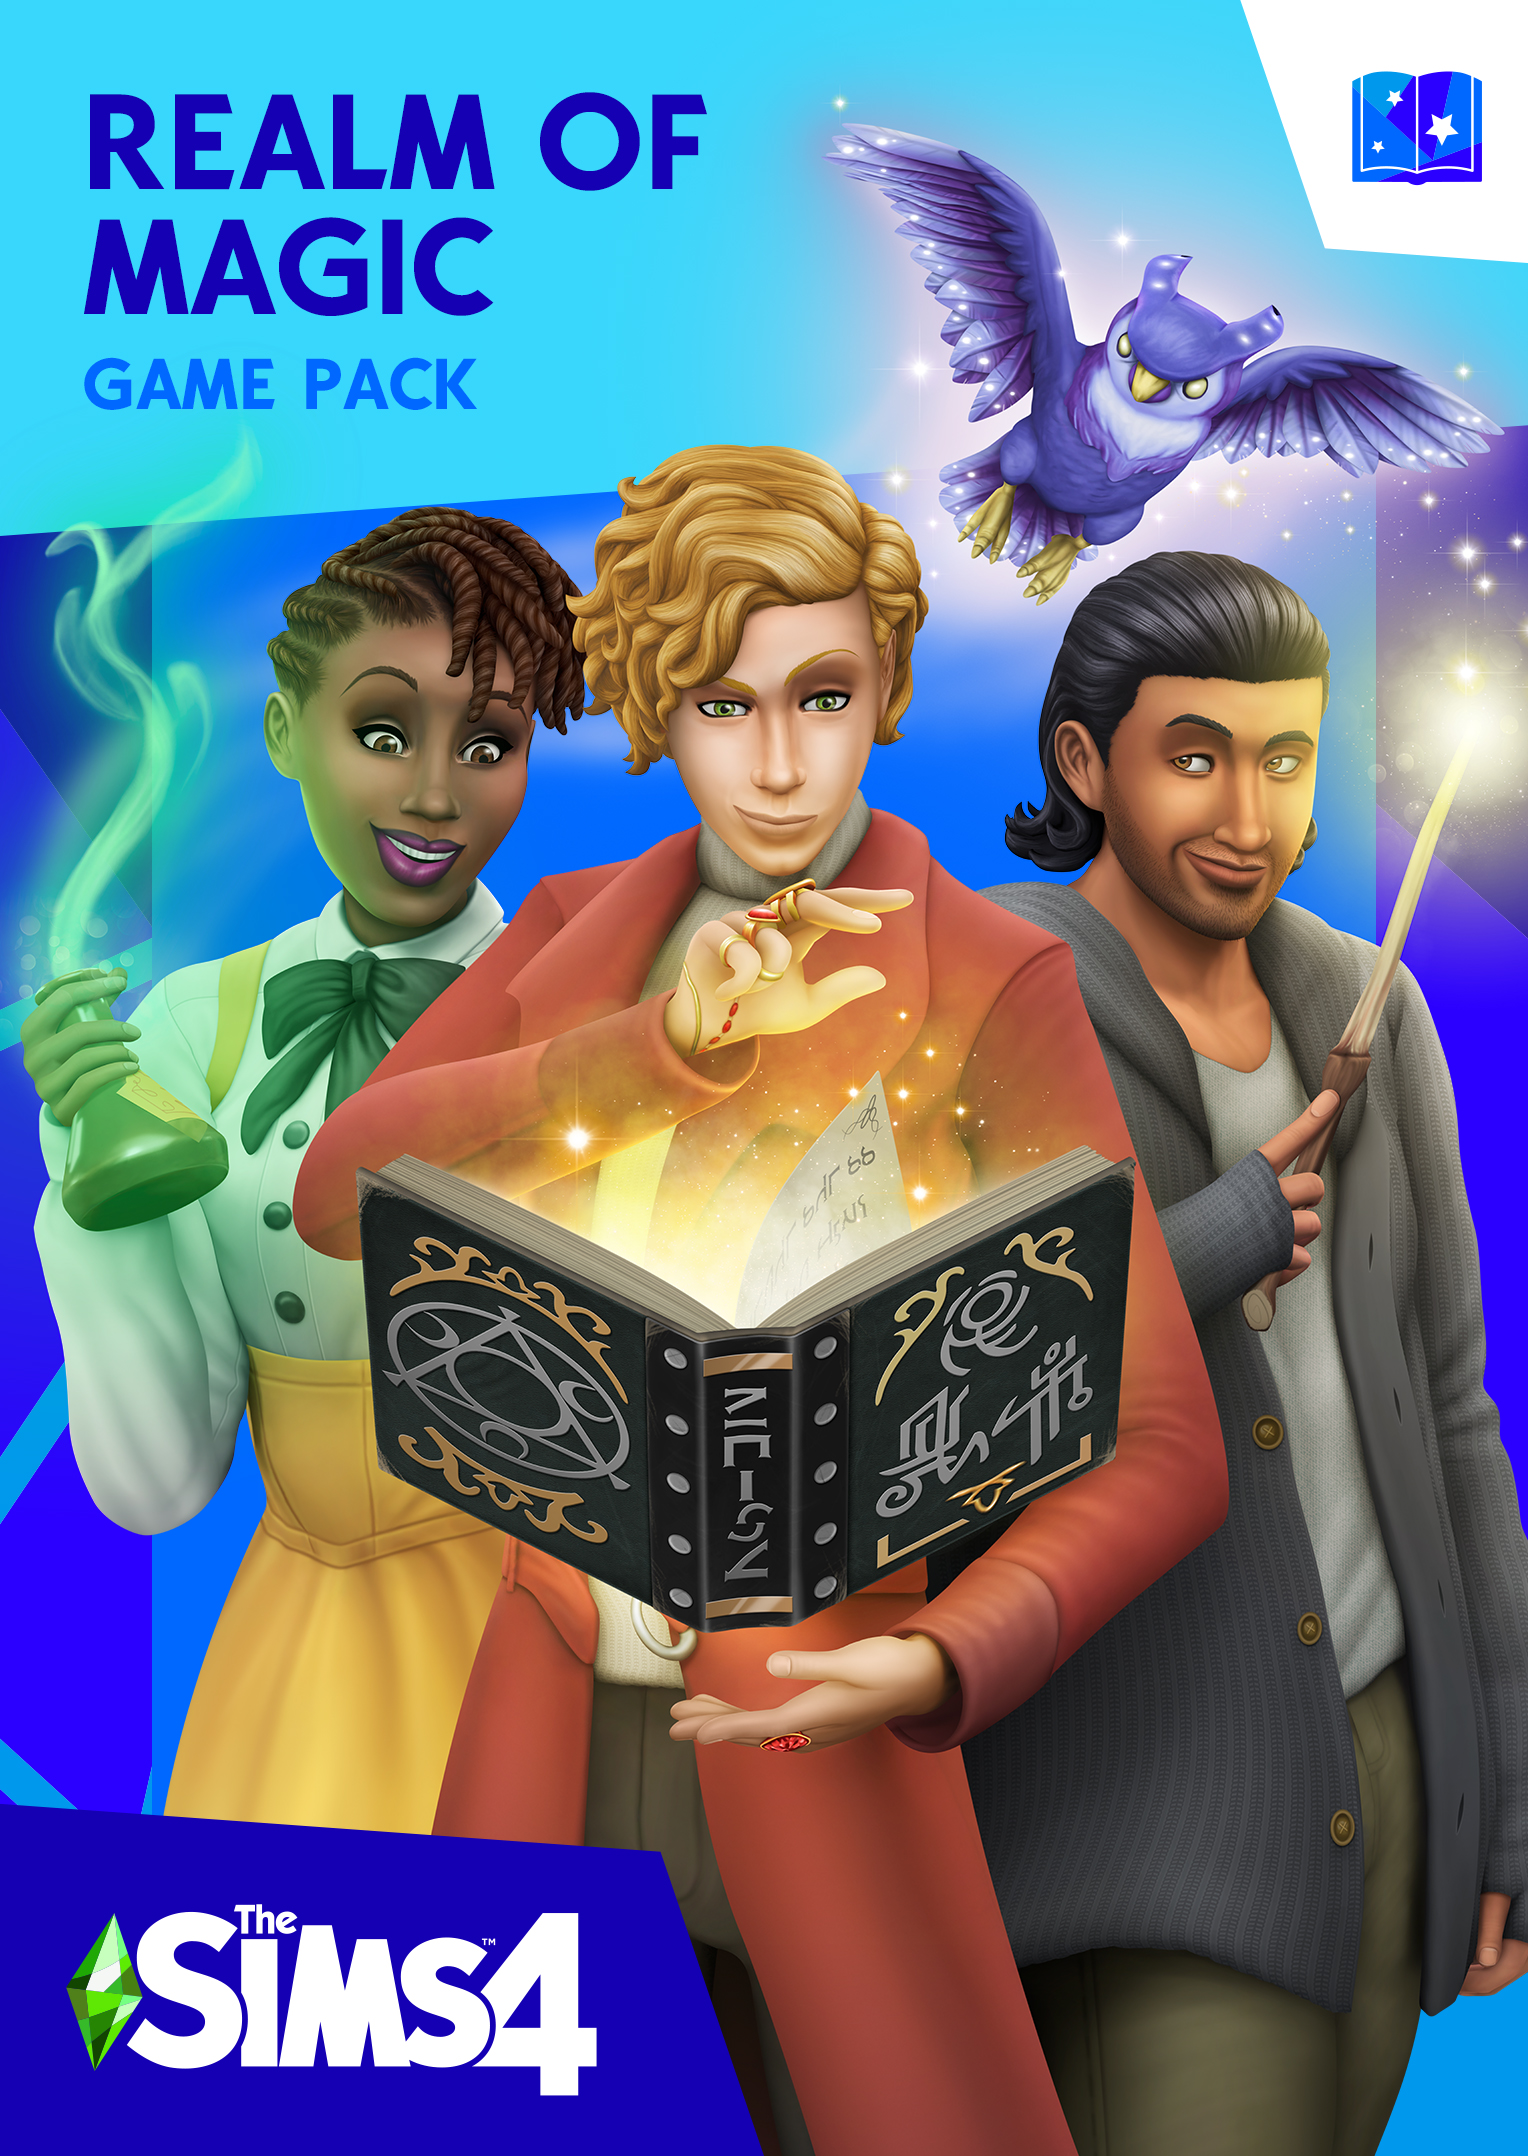 The Sims 4: Realm of Magic   The Sims Wiki   FANDOM powered